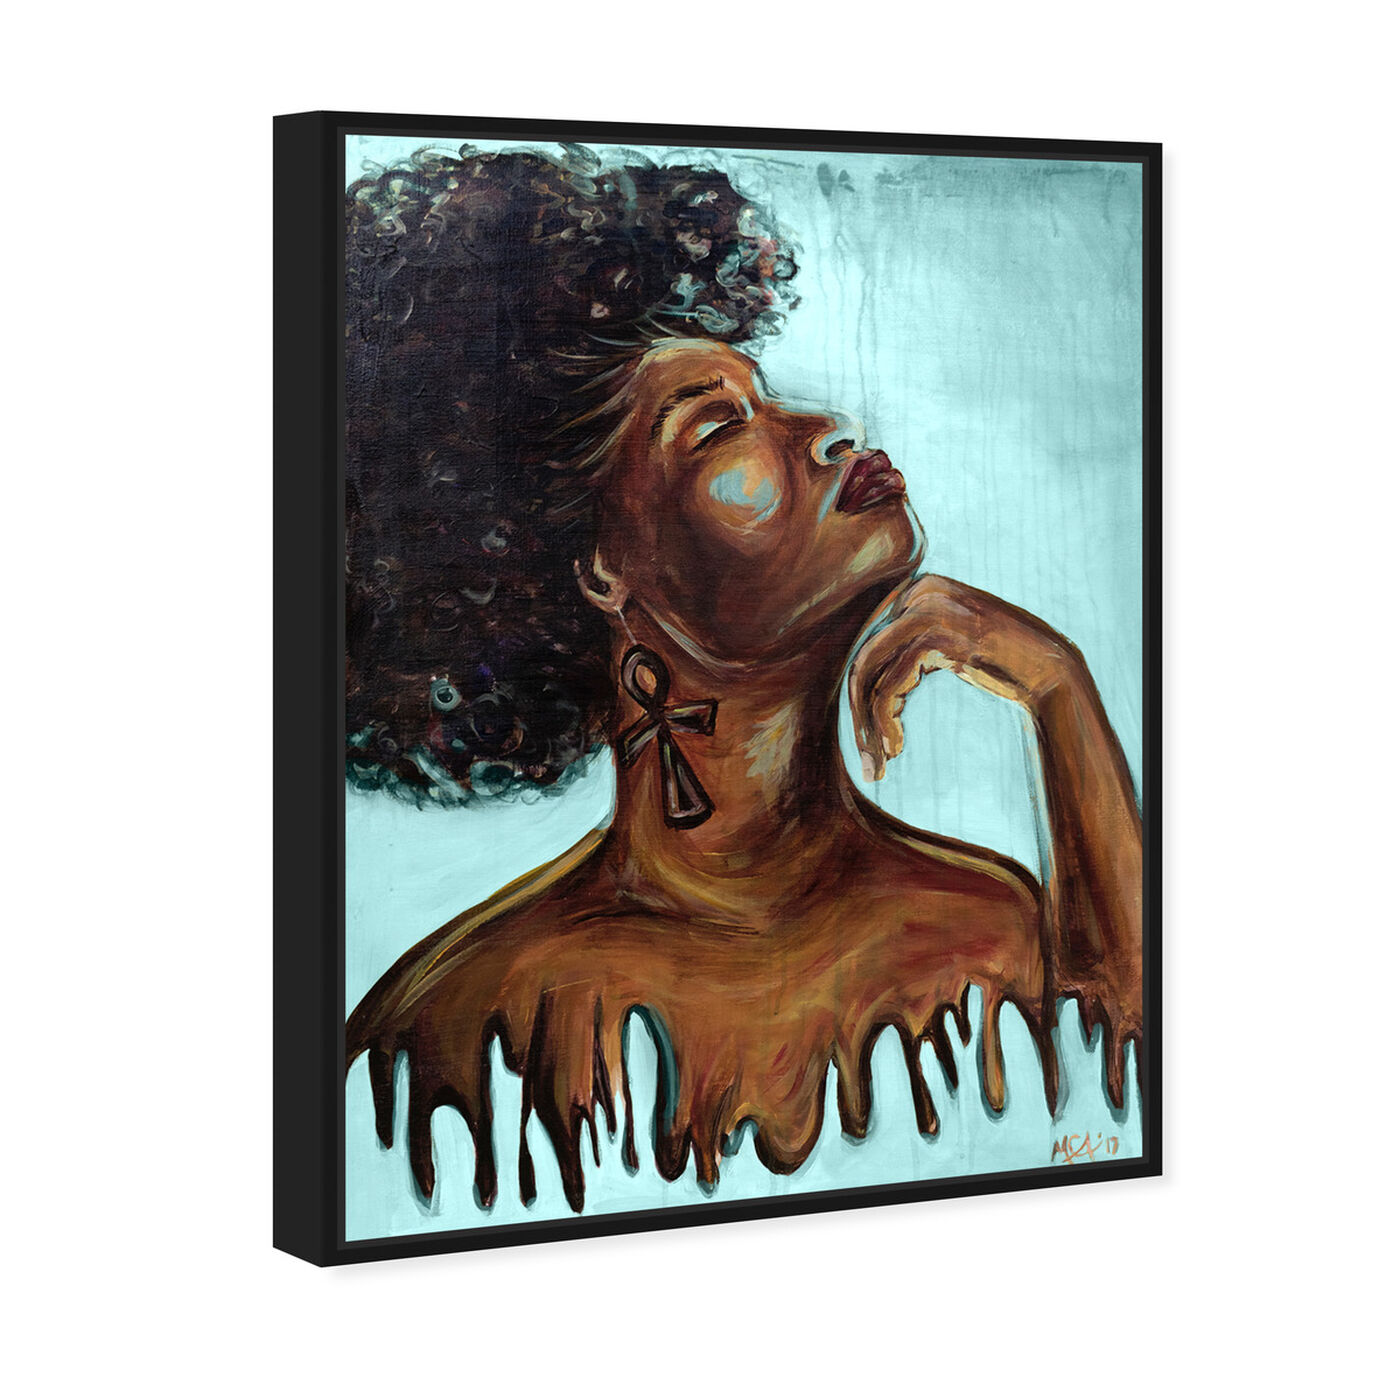 Angled view of Marissa Anderson - Dripping Melanin Blue featuring fashion and glam and portraits art.